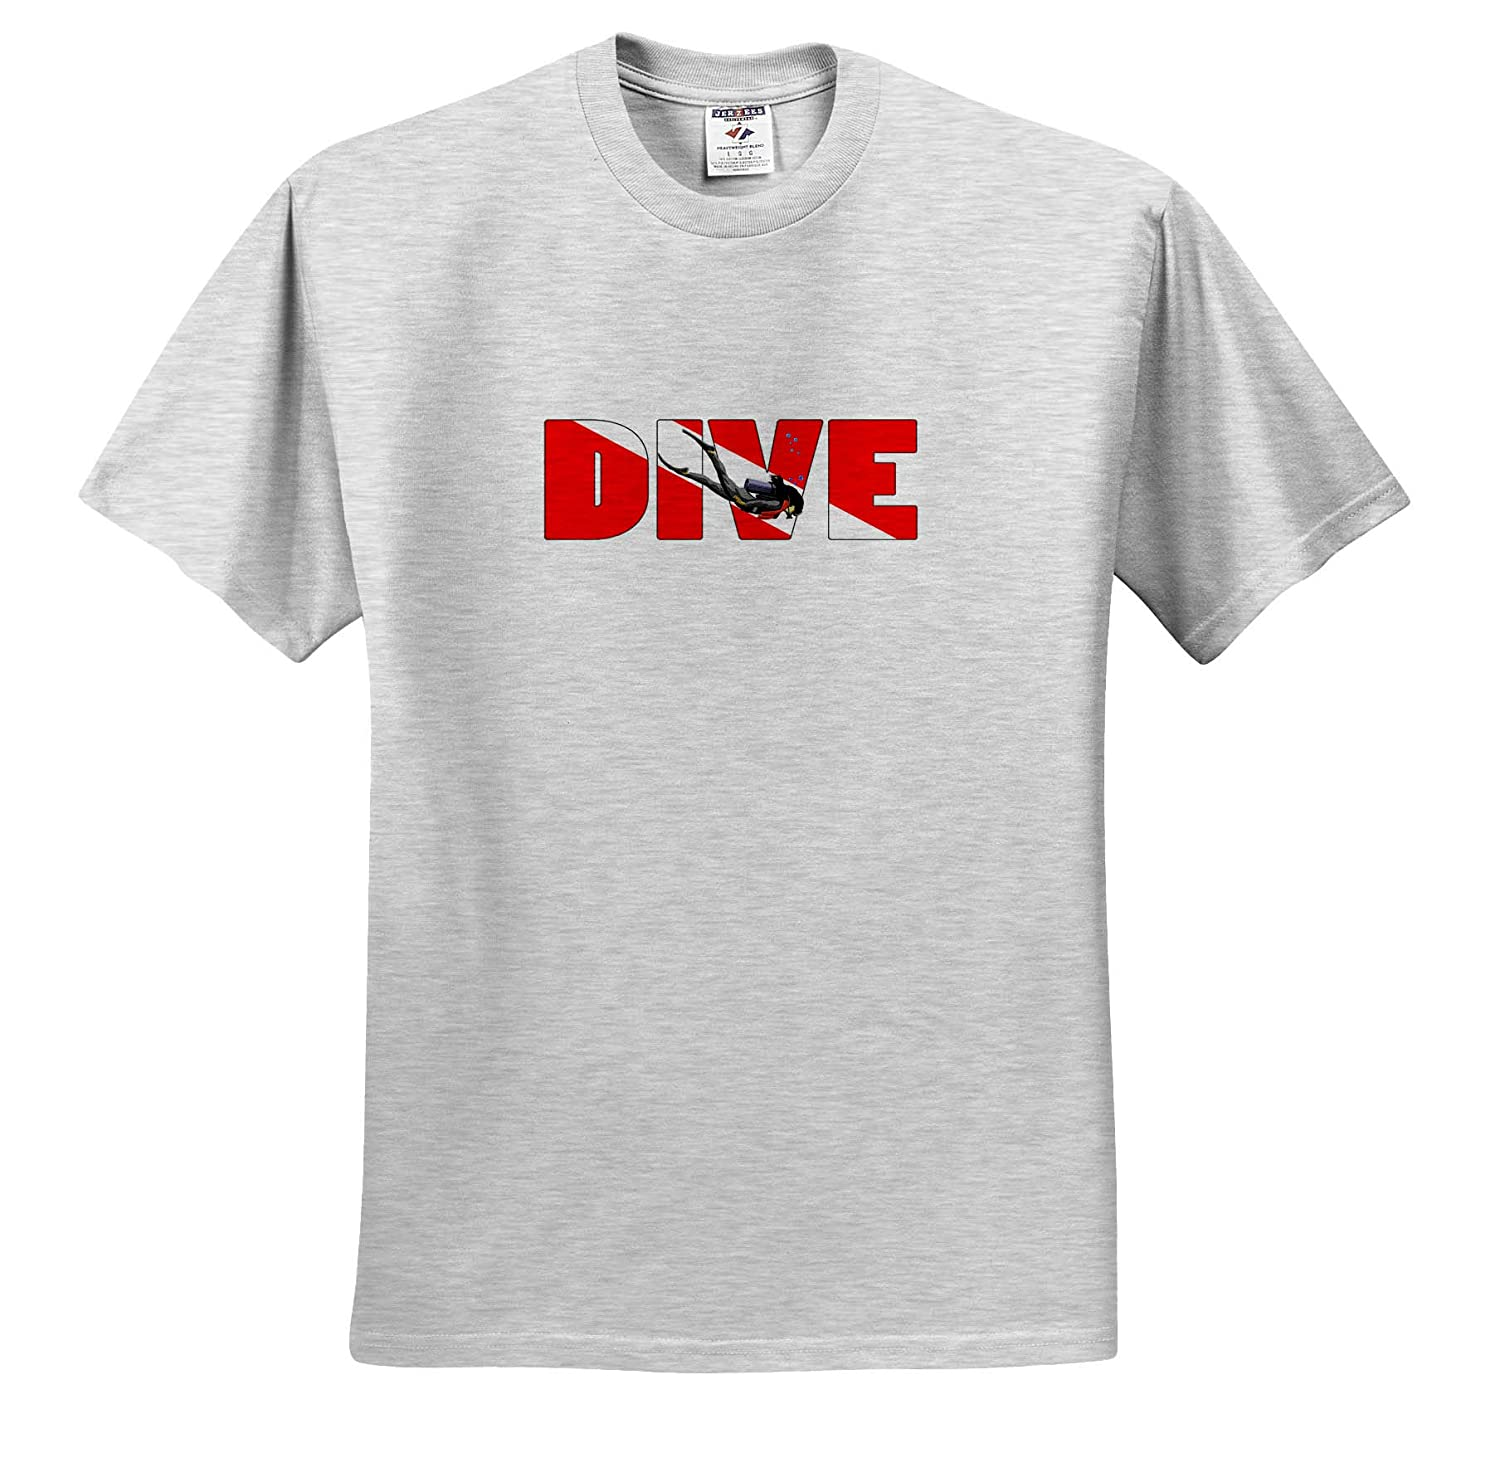 - T-Shirts Scuba 3dRose Macdonald Creative Studios Female Scuba Diver with Dive in The red and White Dive Flag Colors